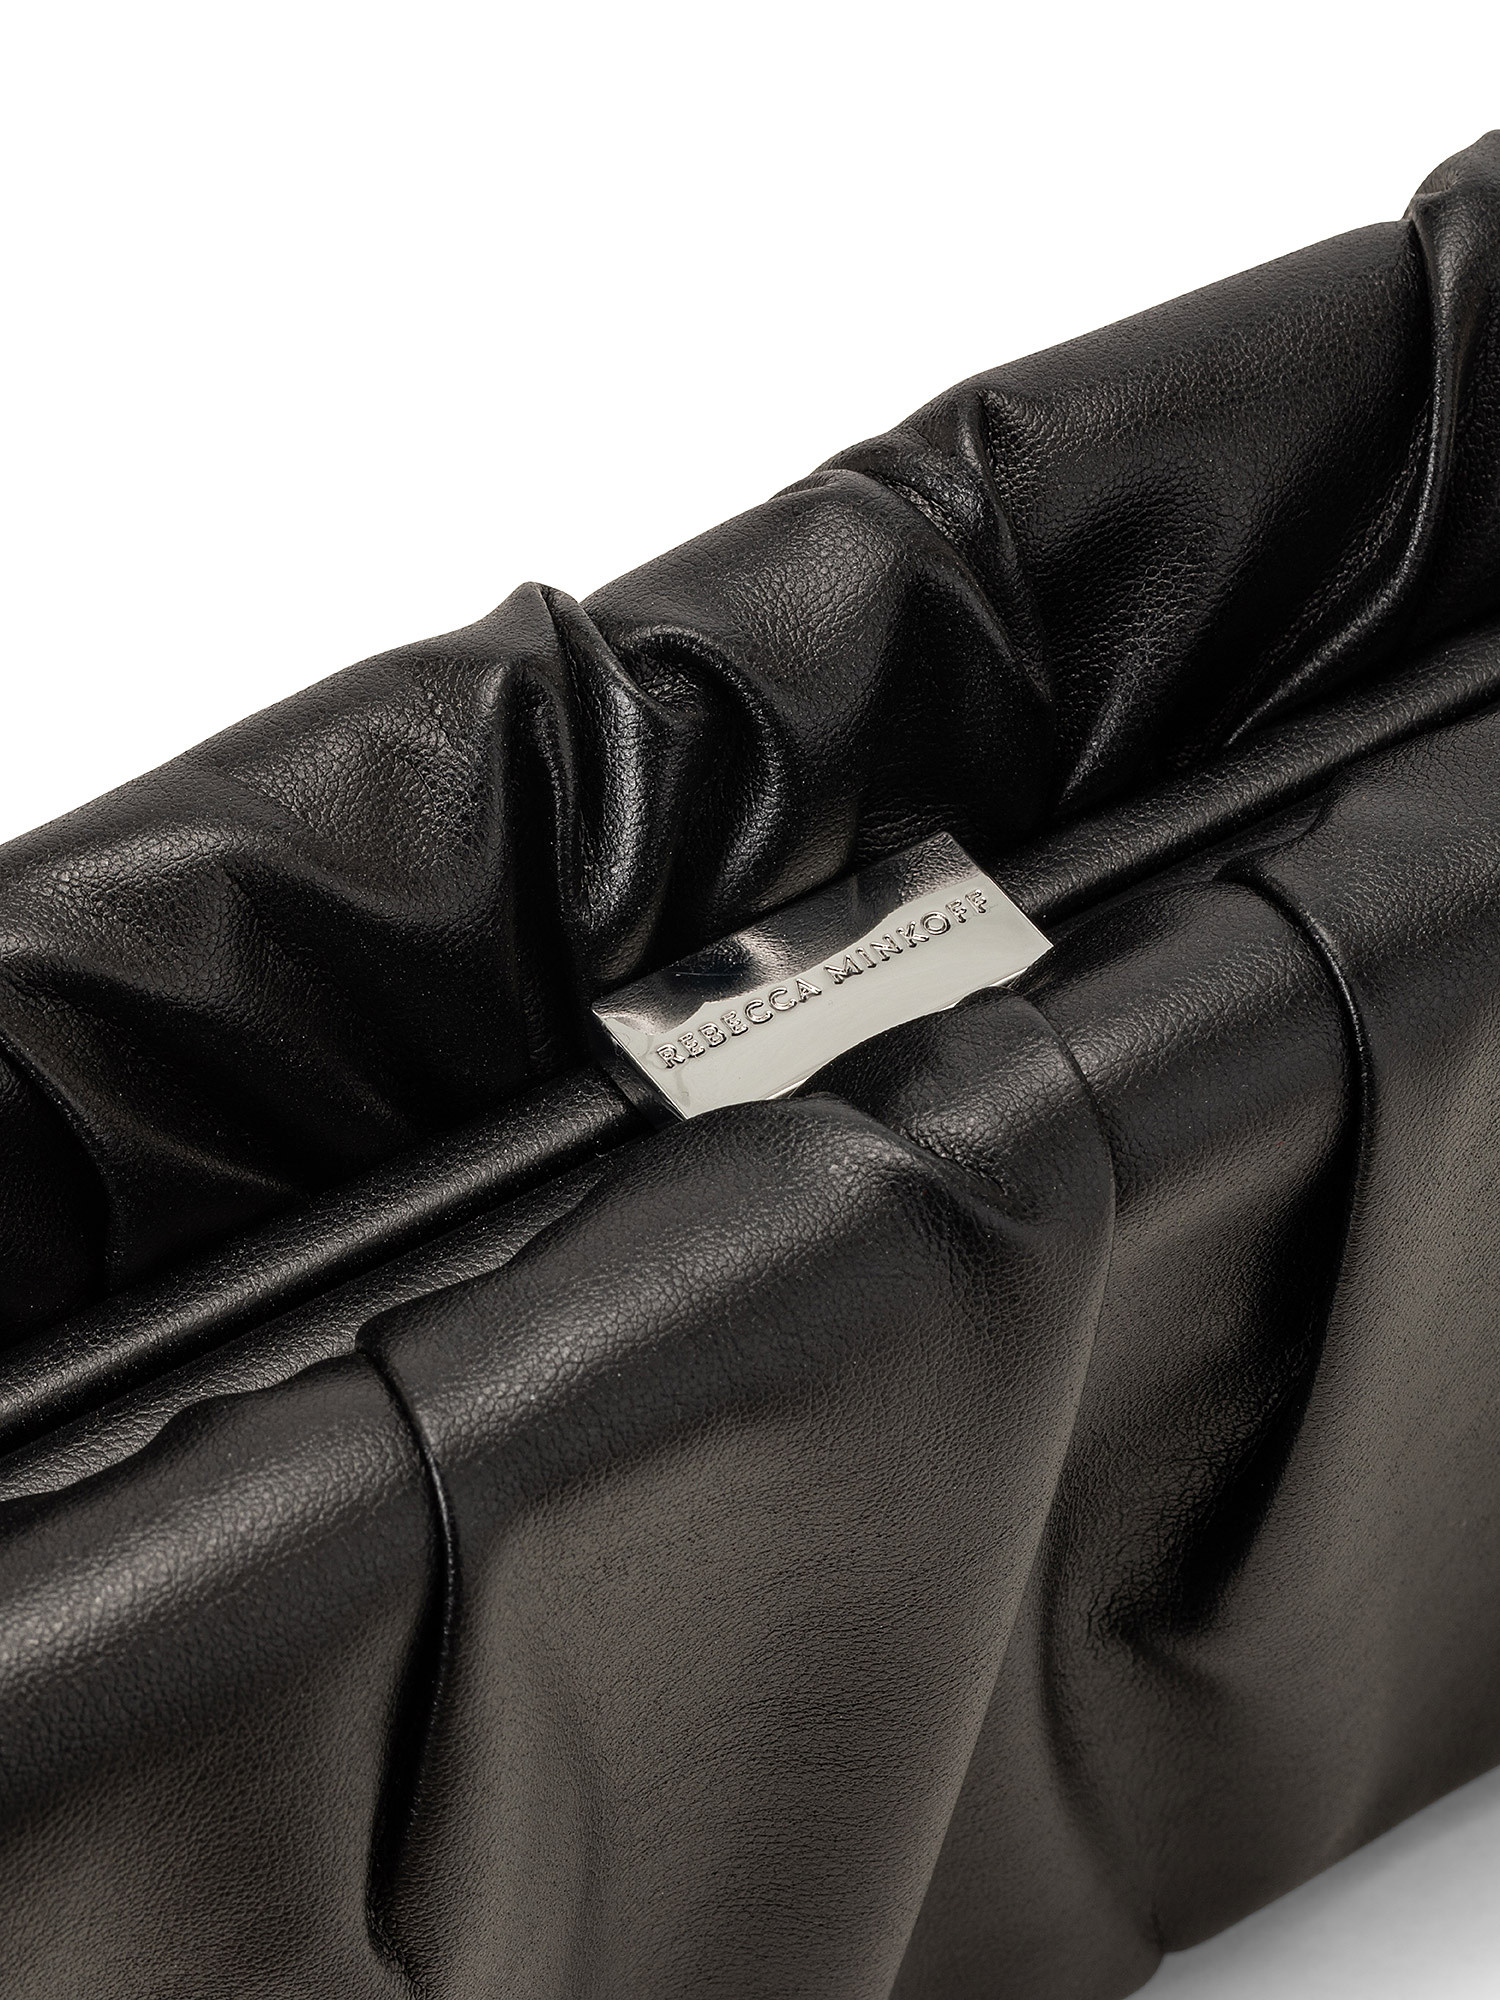 Ruched Frame Clutch, Nero, large image number 2